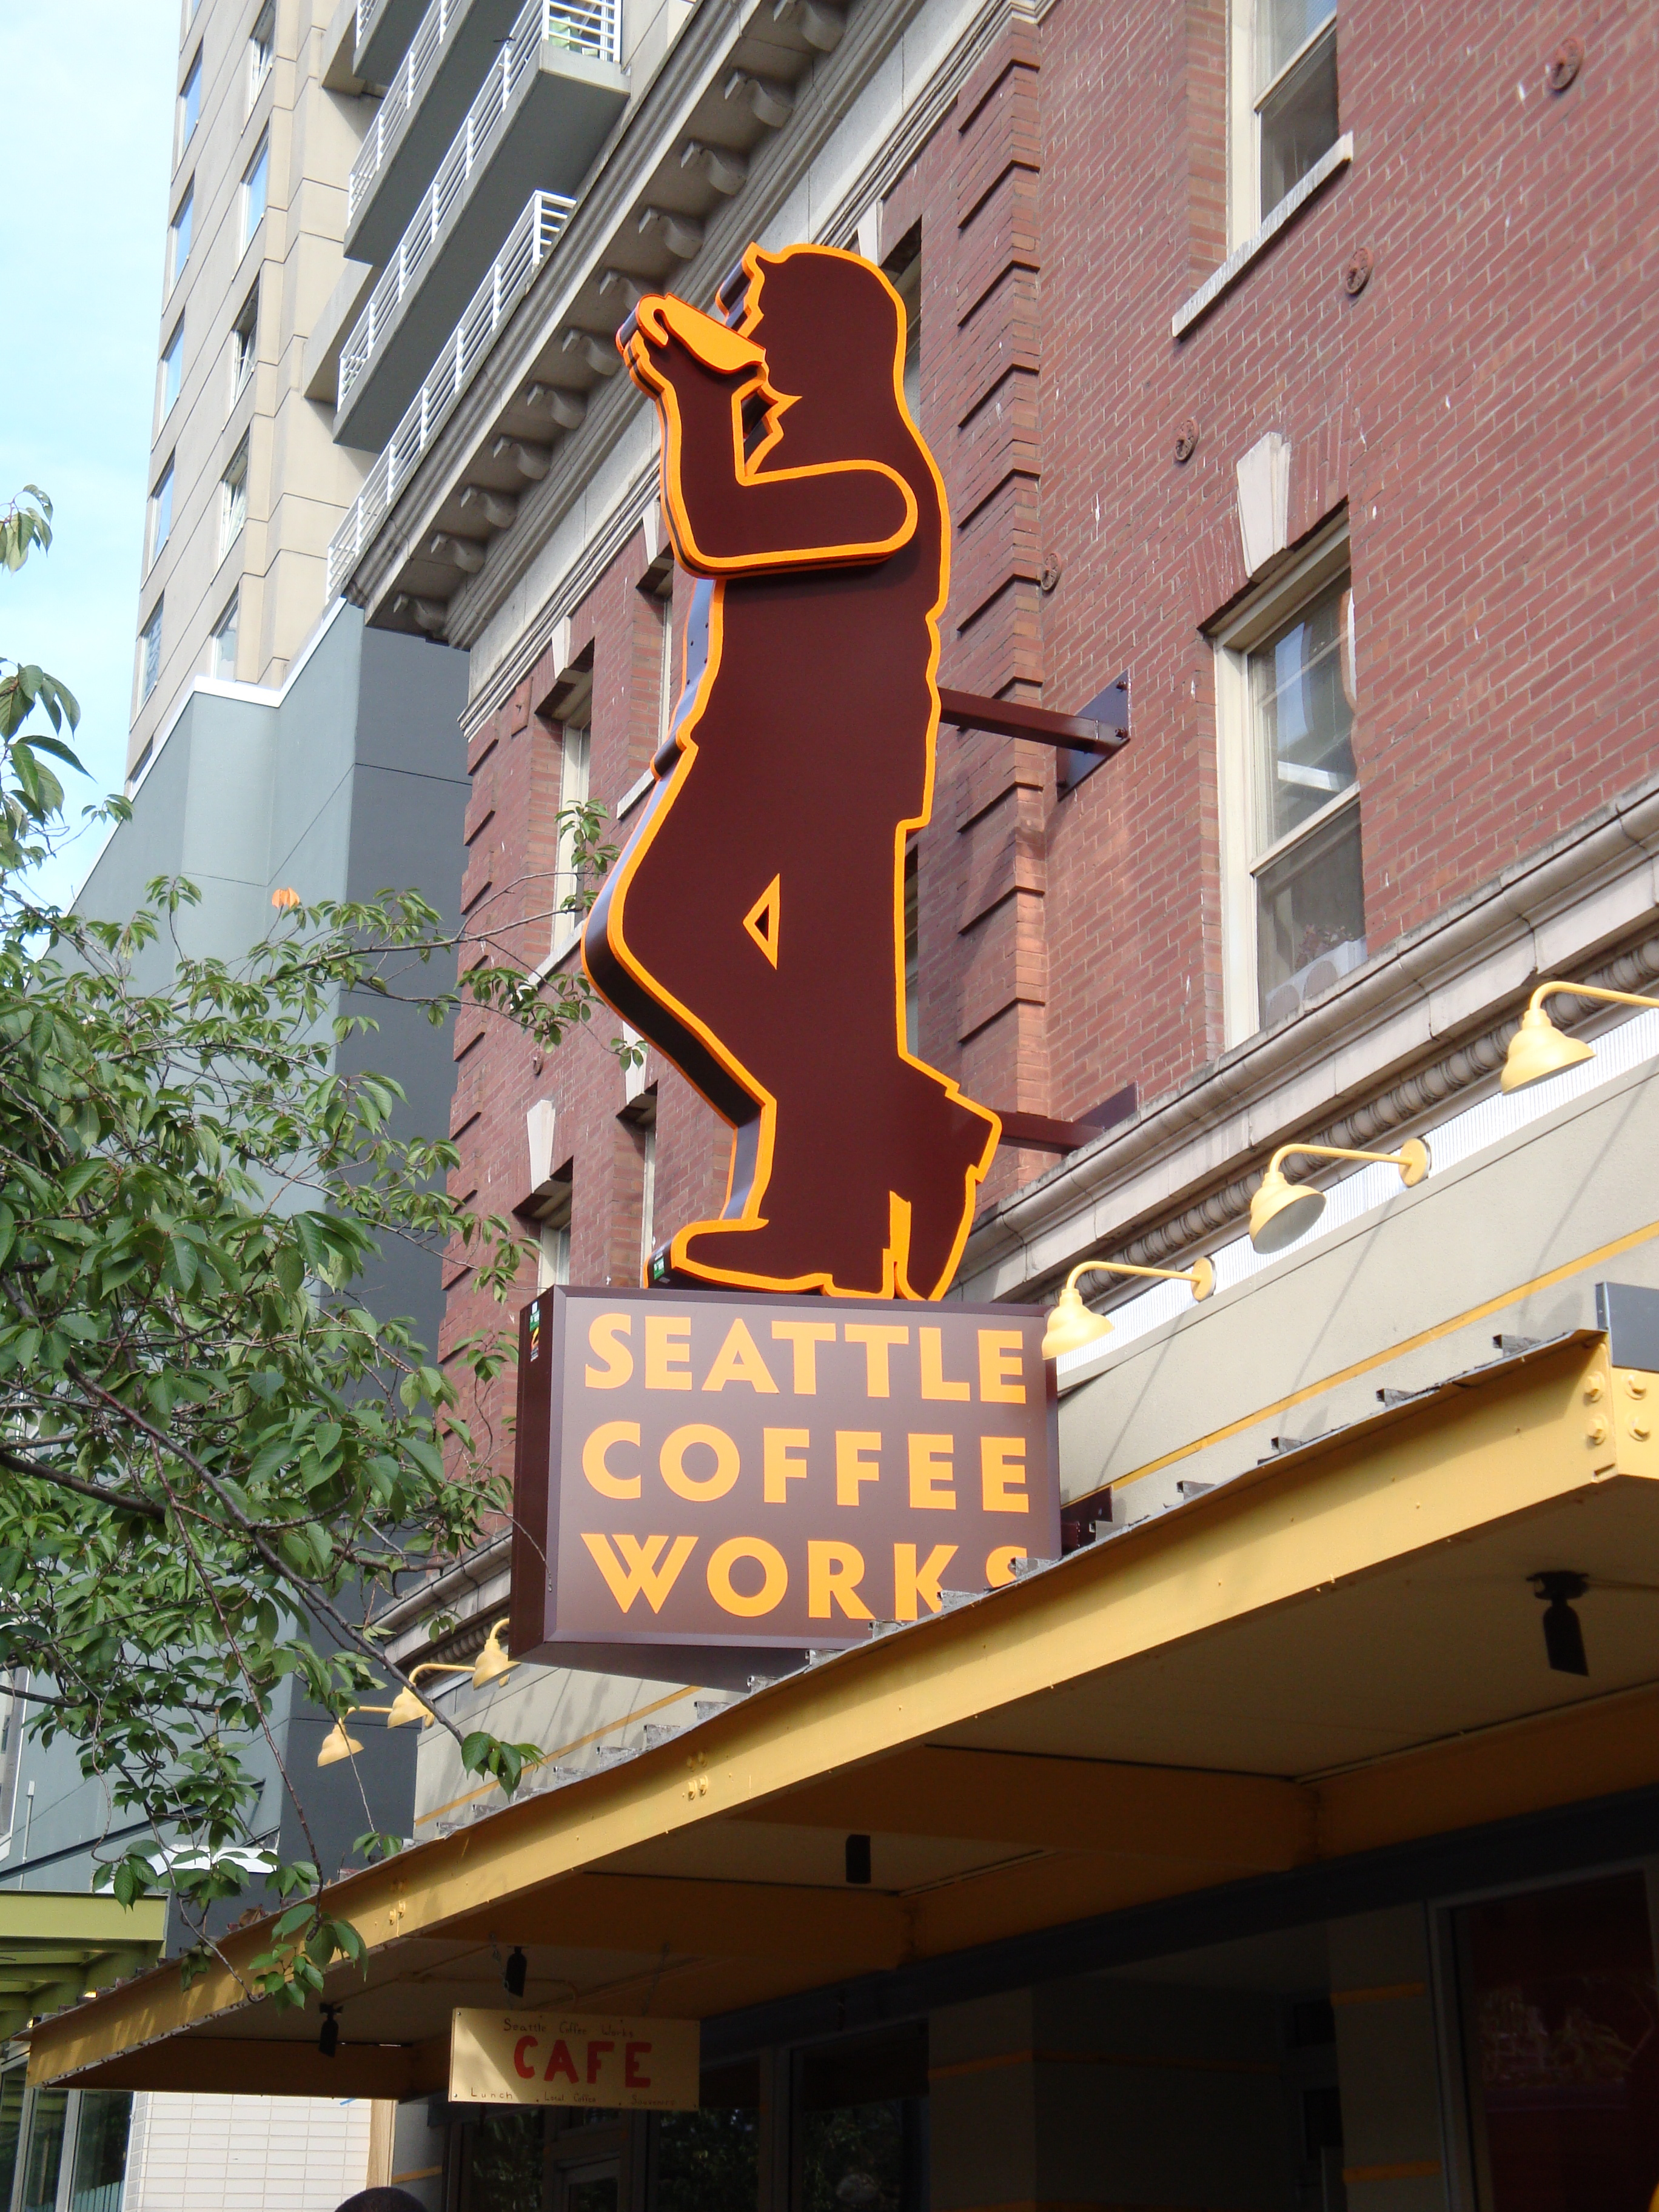 Seattle Coffee Works - the arm actually moves up and down!